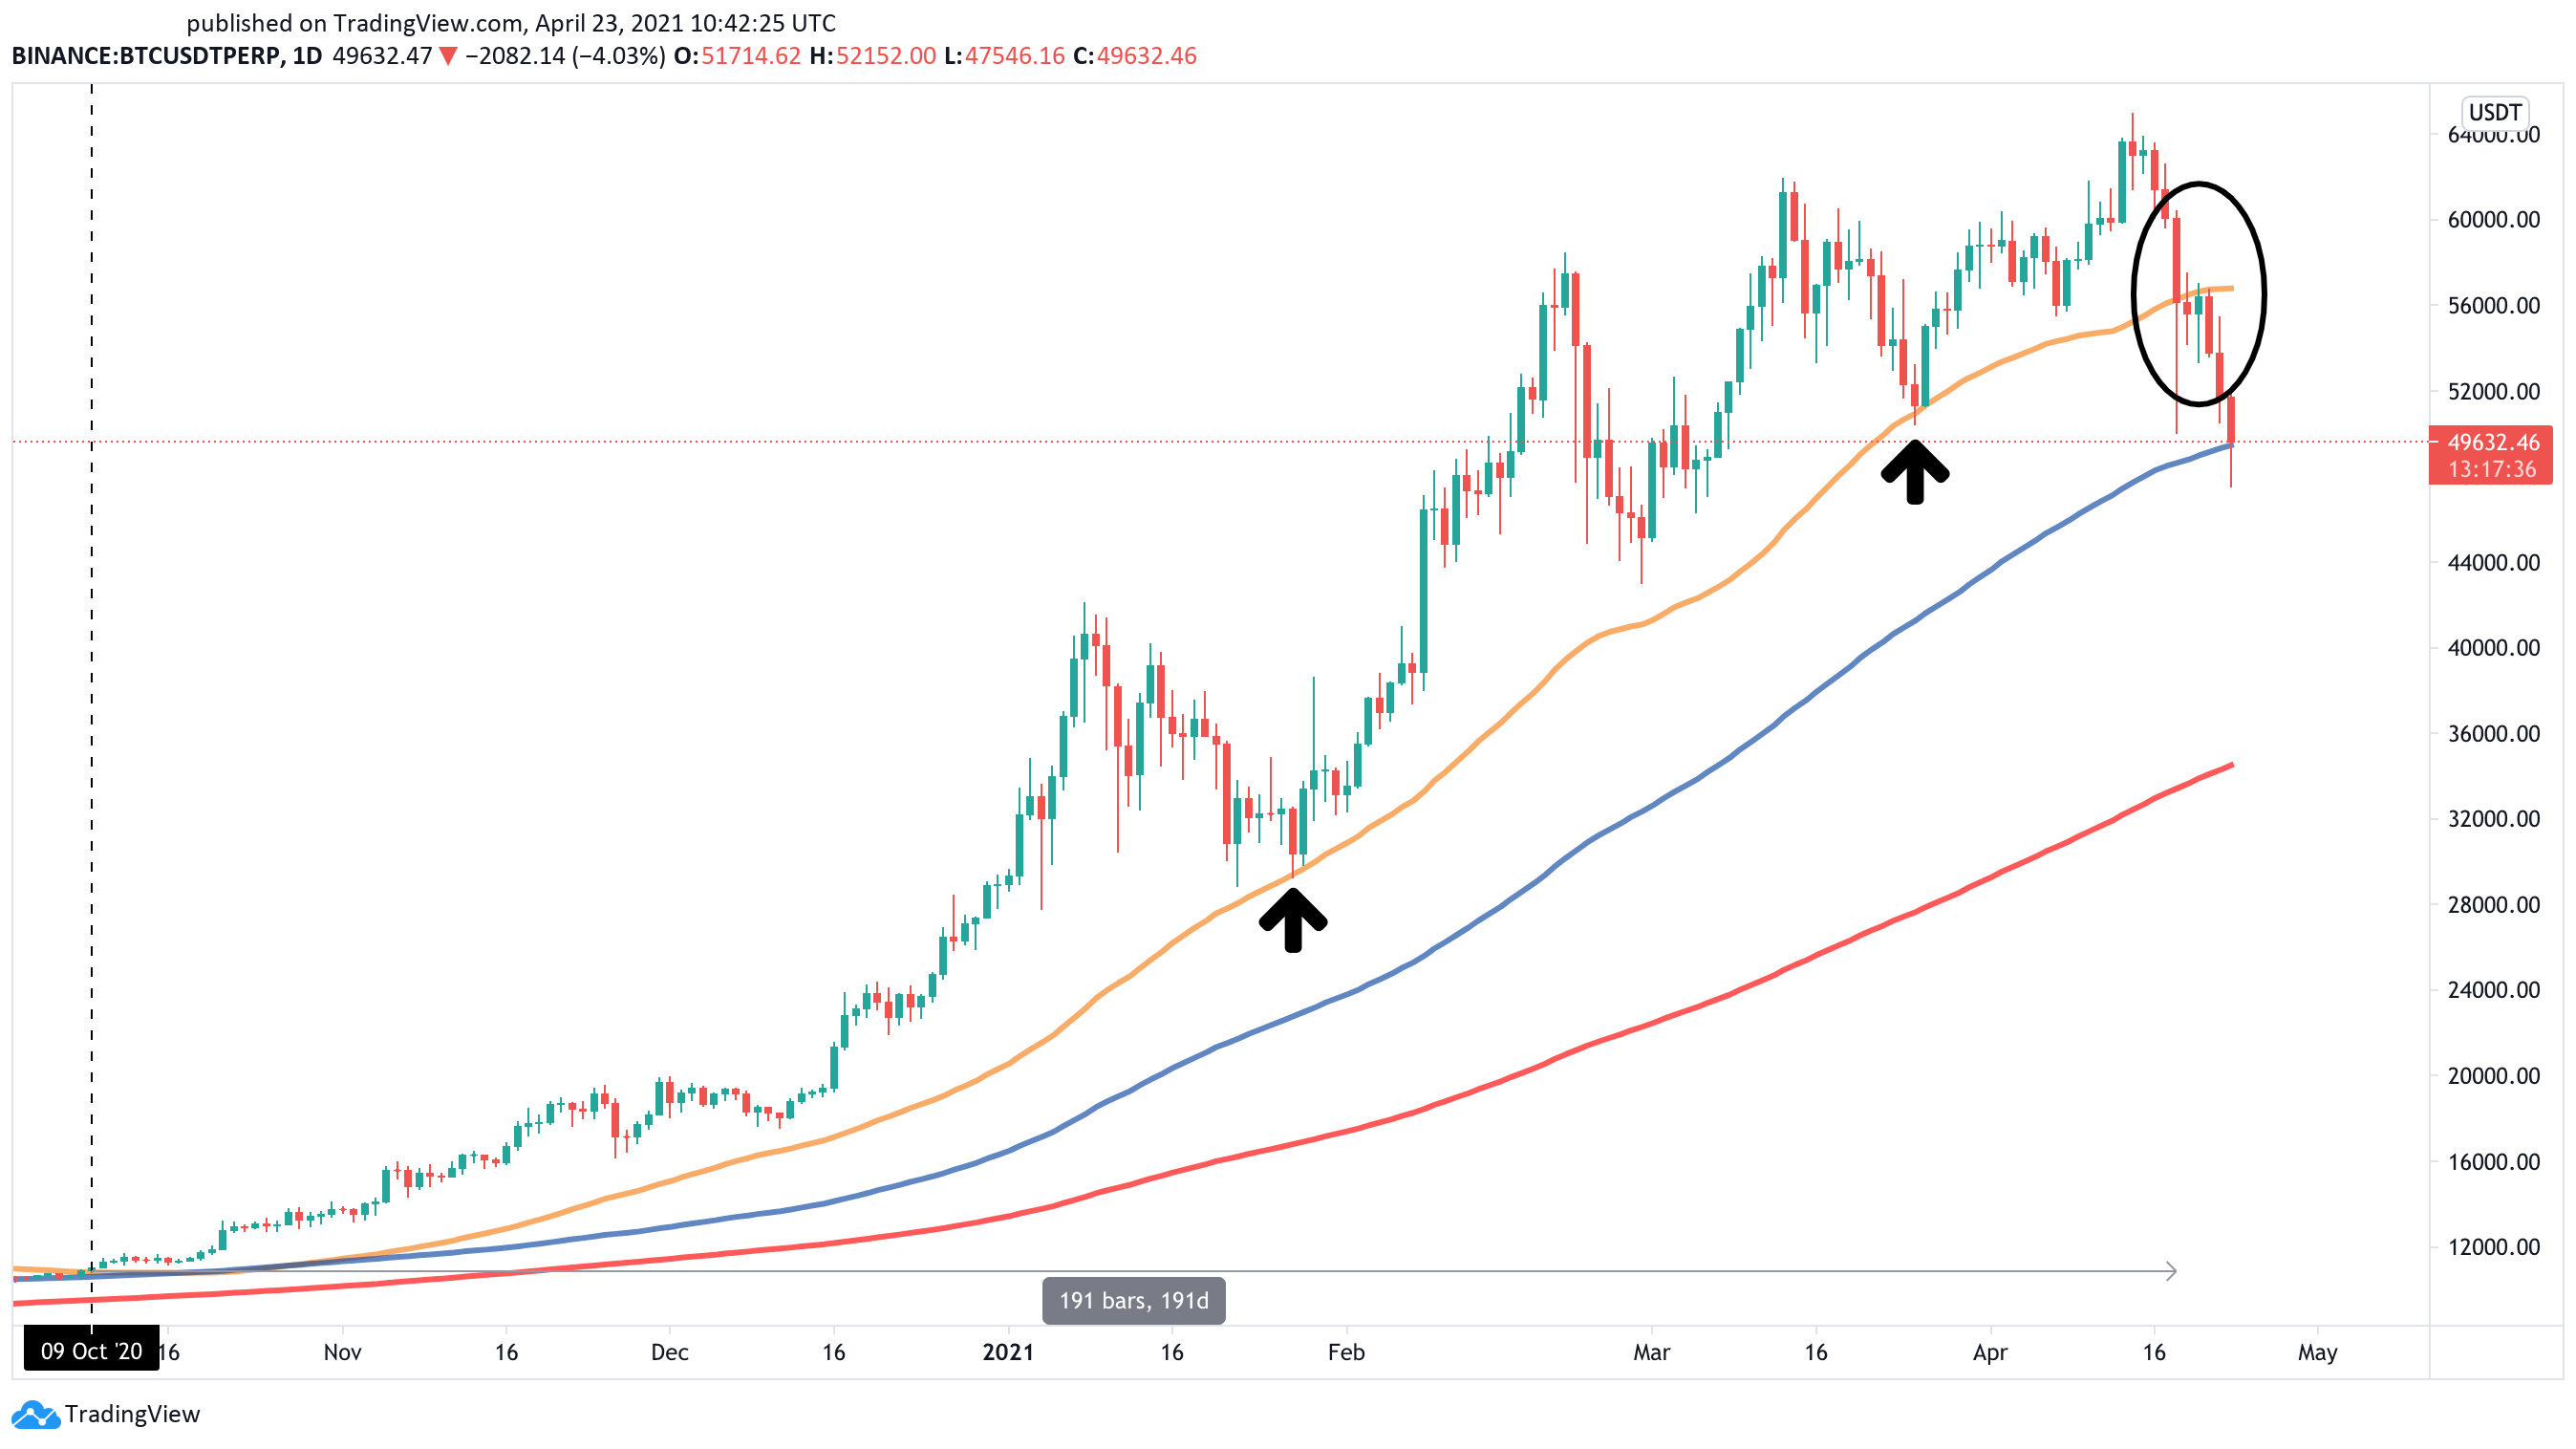 Bitcoin, Ethereum, and XRP Enter Downtrend With Few Signs of Slowing | Crypto Briefing